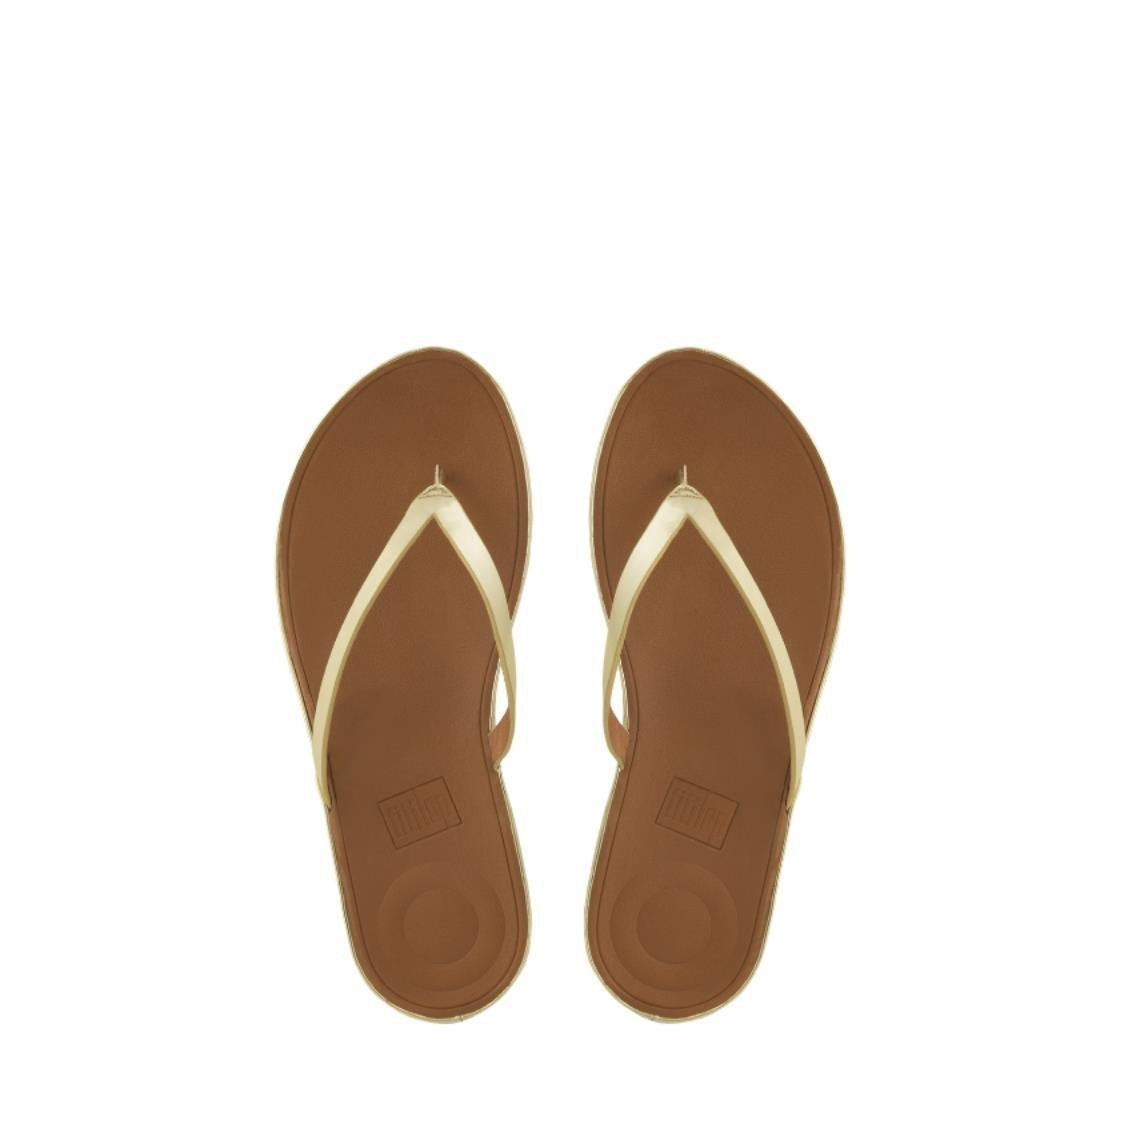 Linny Mirror Toe-Thong Sandals Gold